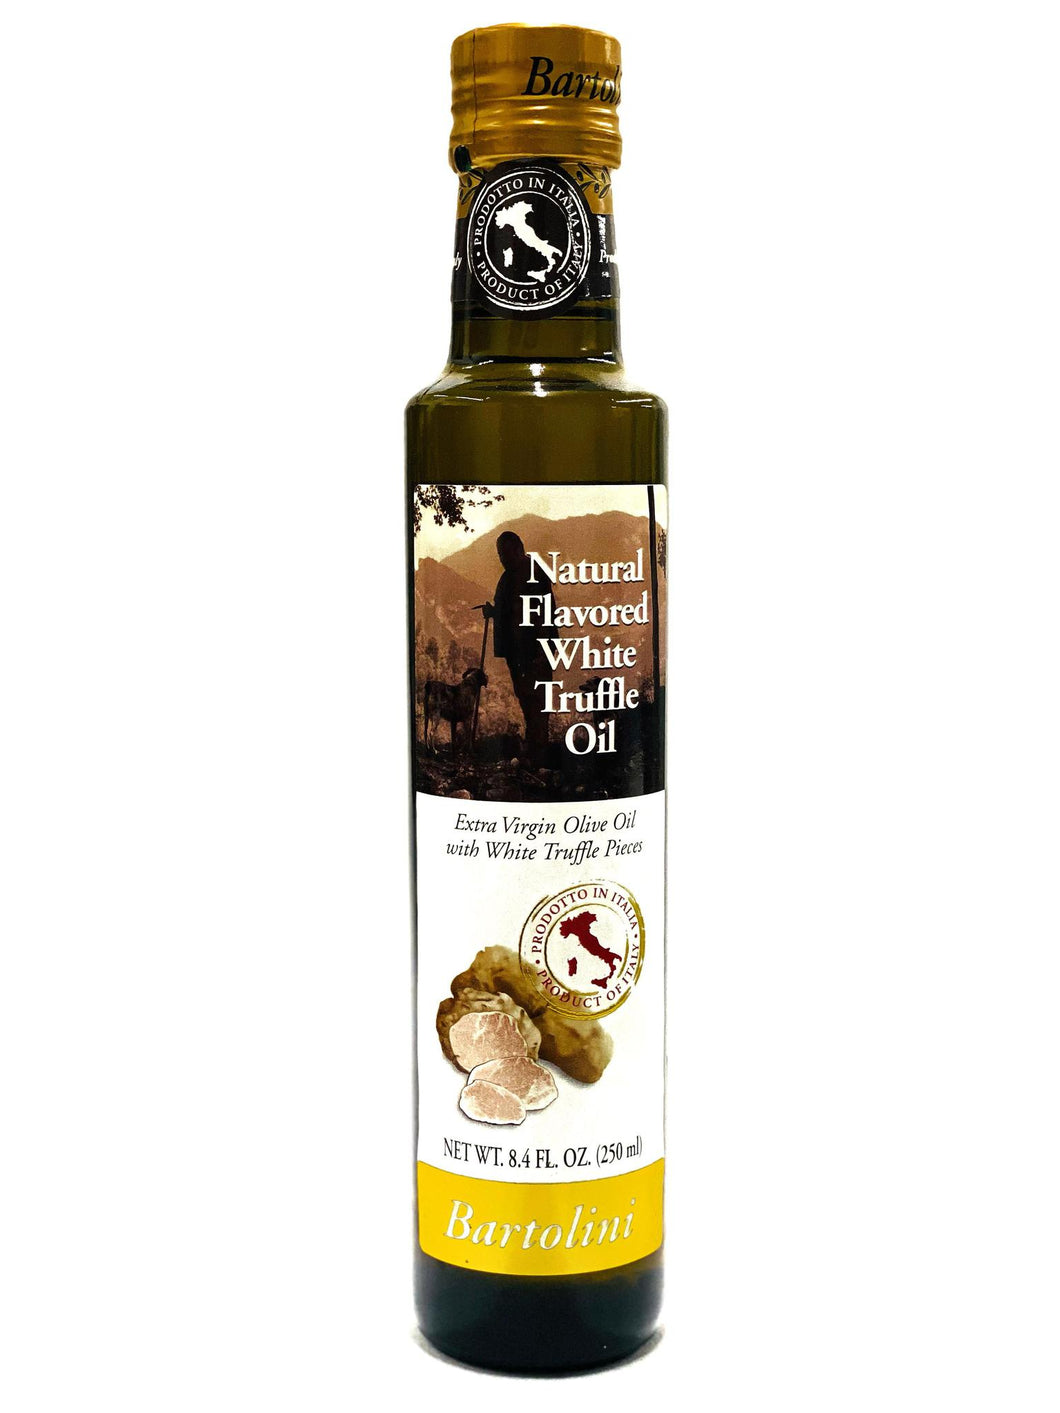 Bartolini Natural Flavored Black Truffle Oil, 3.4 fl oz